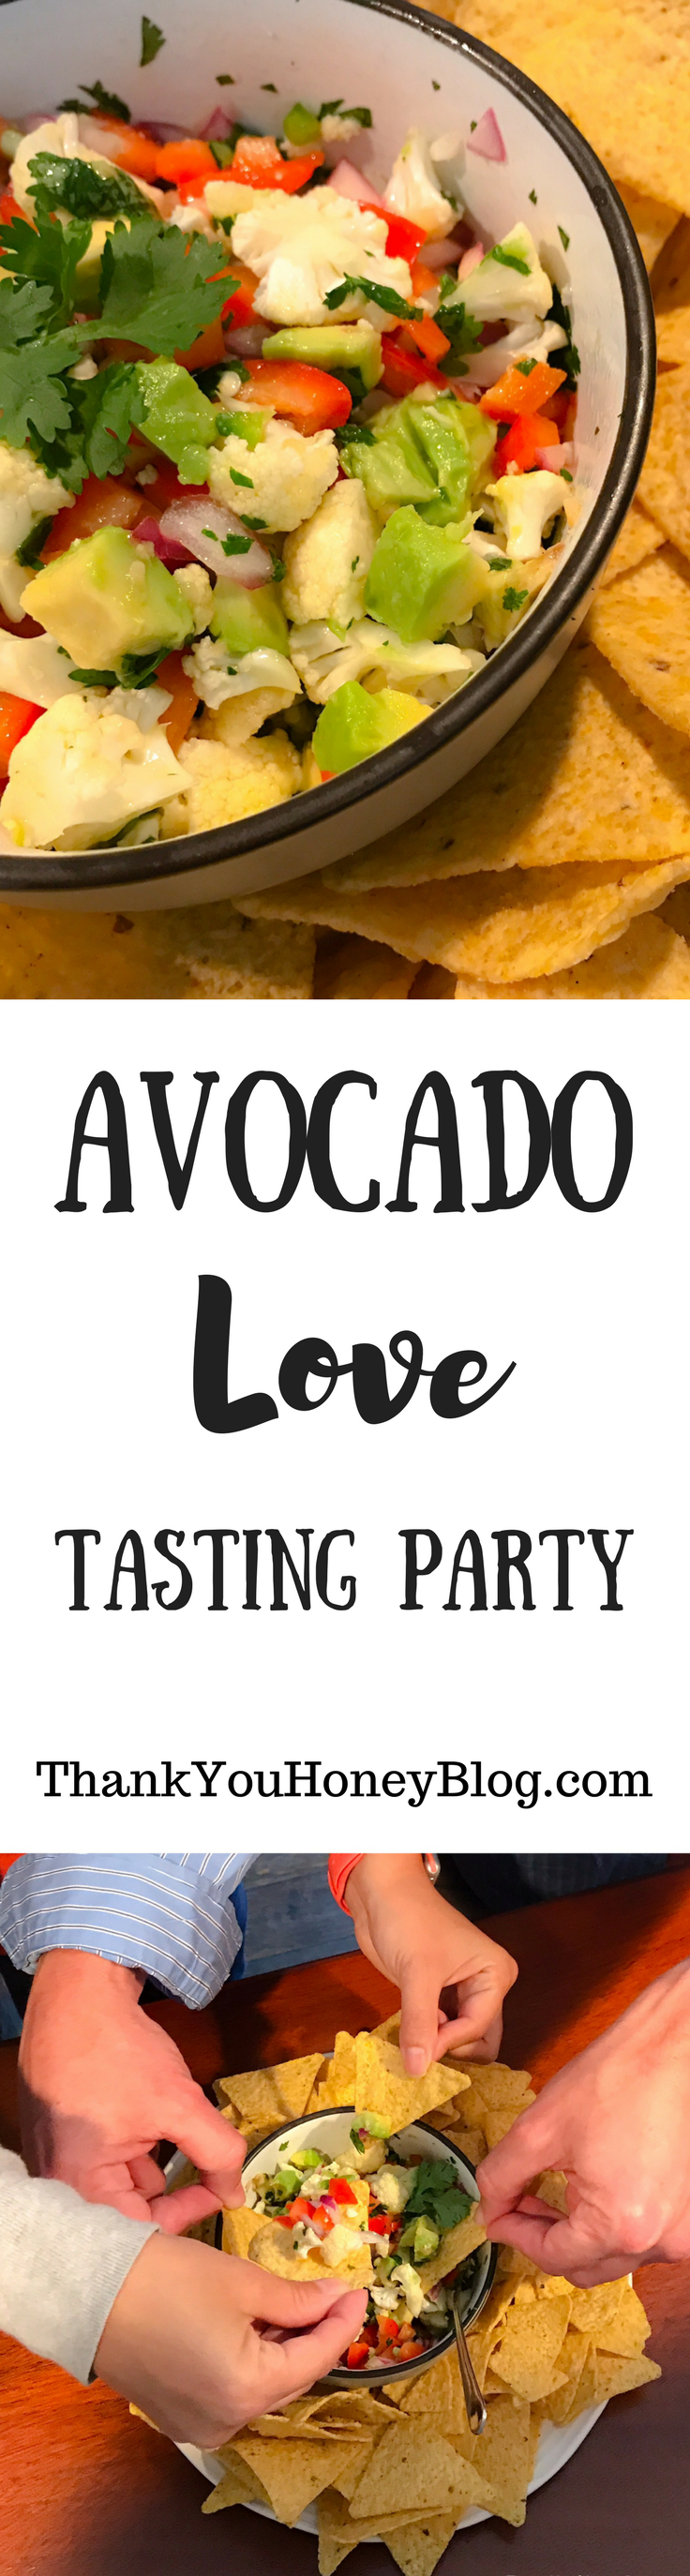 Avocado Love Tasting Party